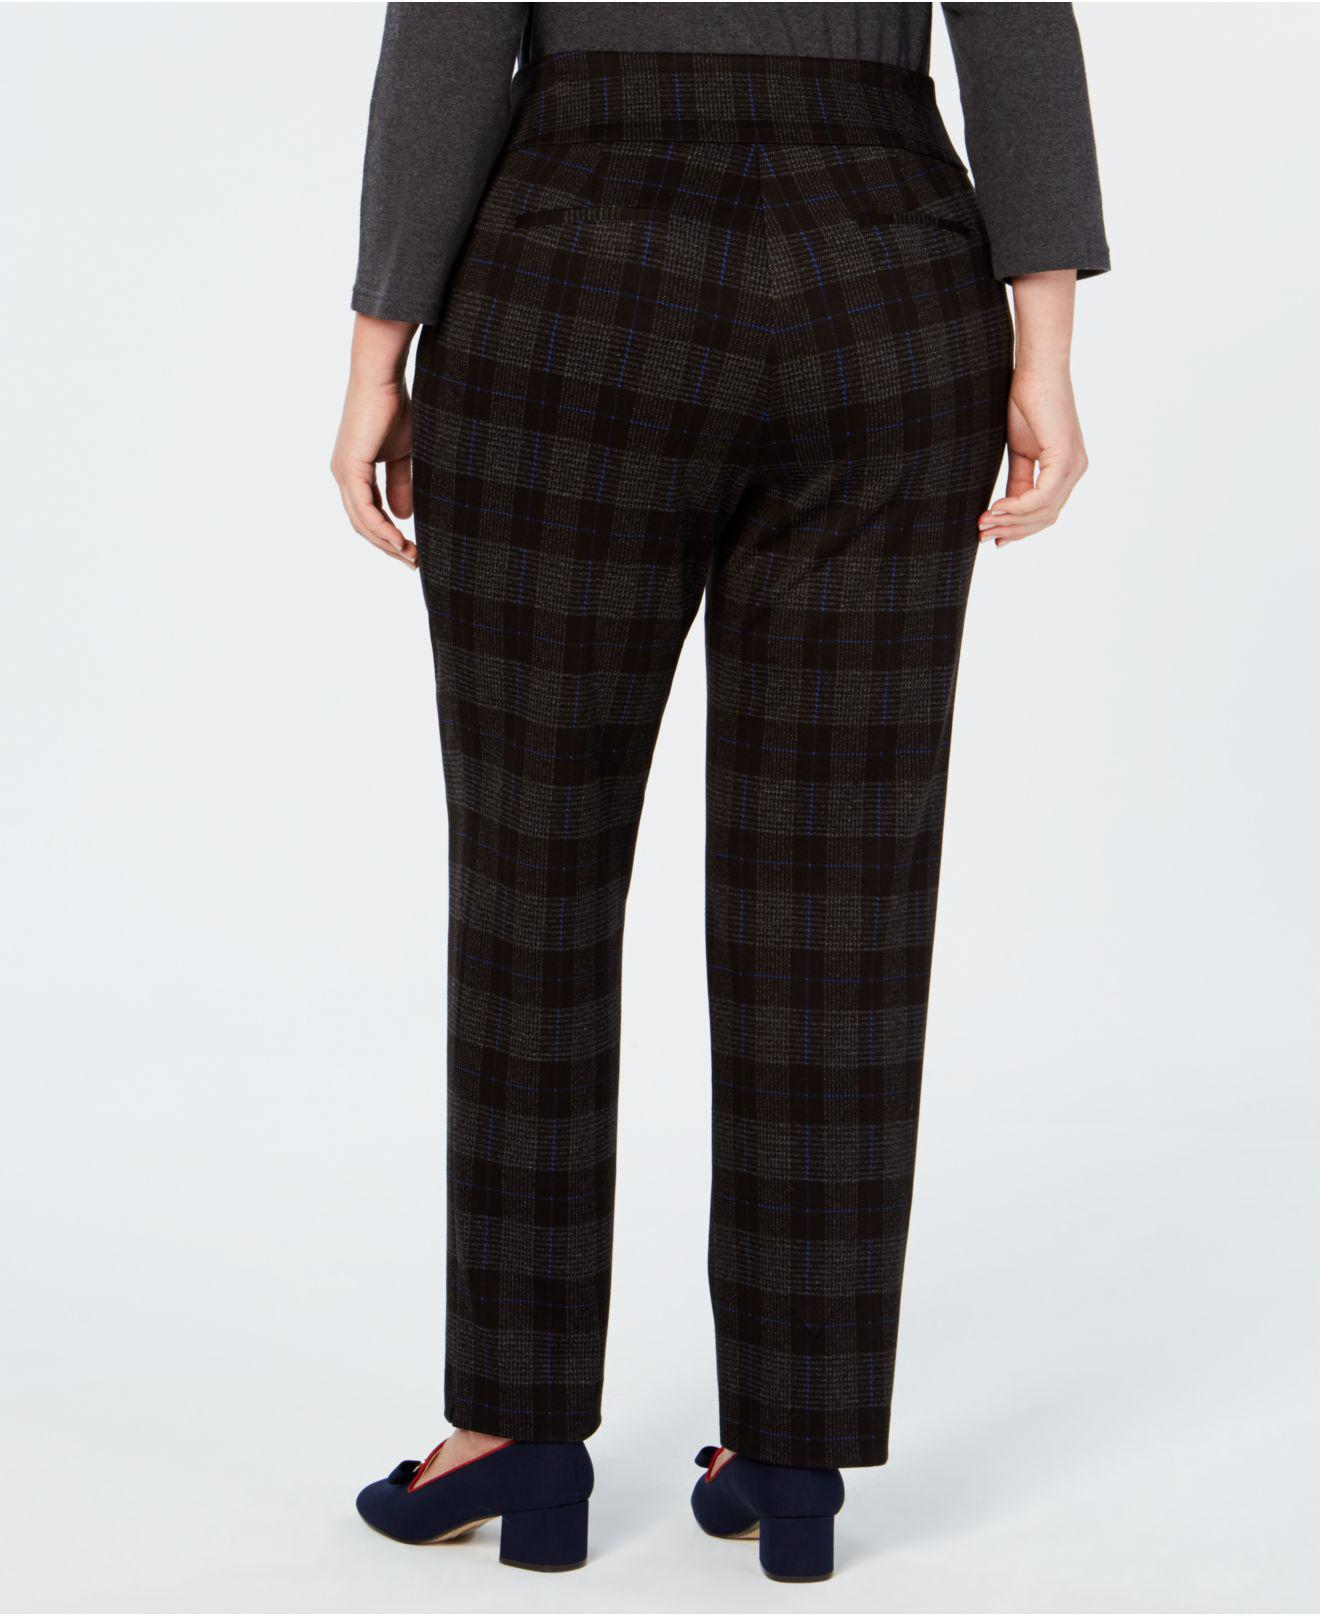 d66d6e70ae8e9 Lyst - Charter Club Plus Size Plaid Pants